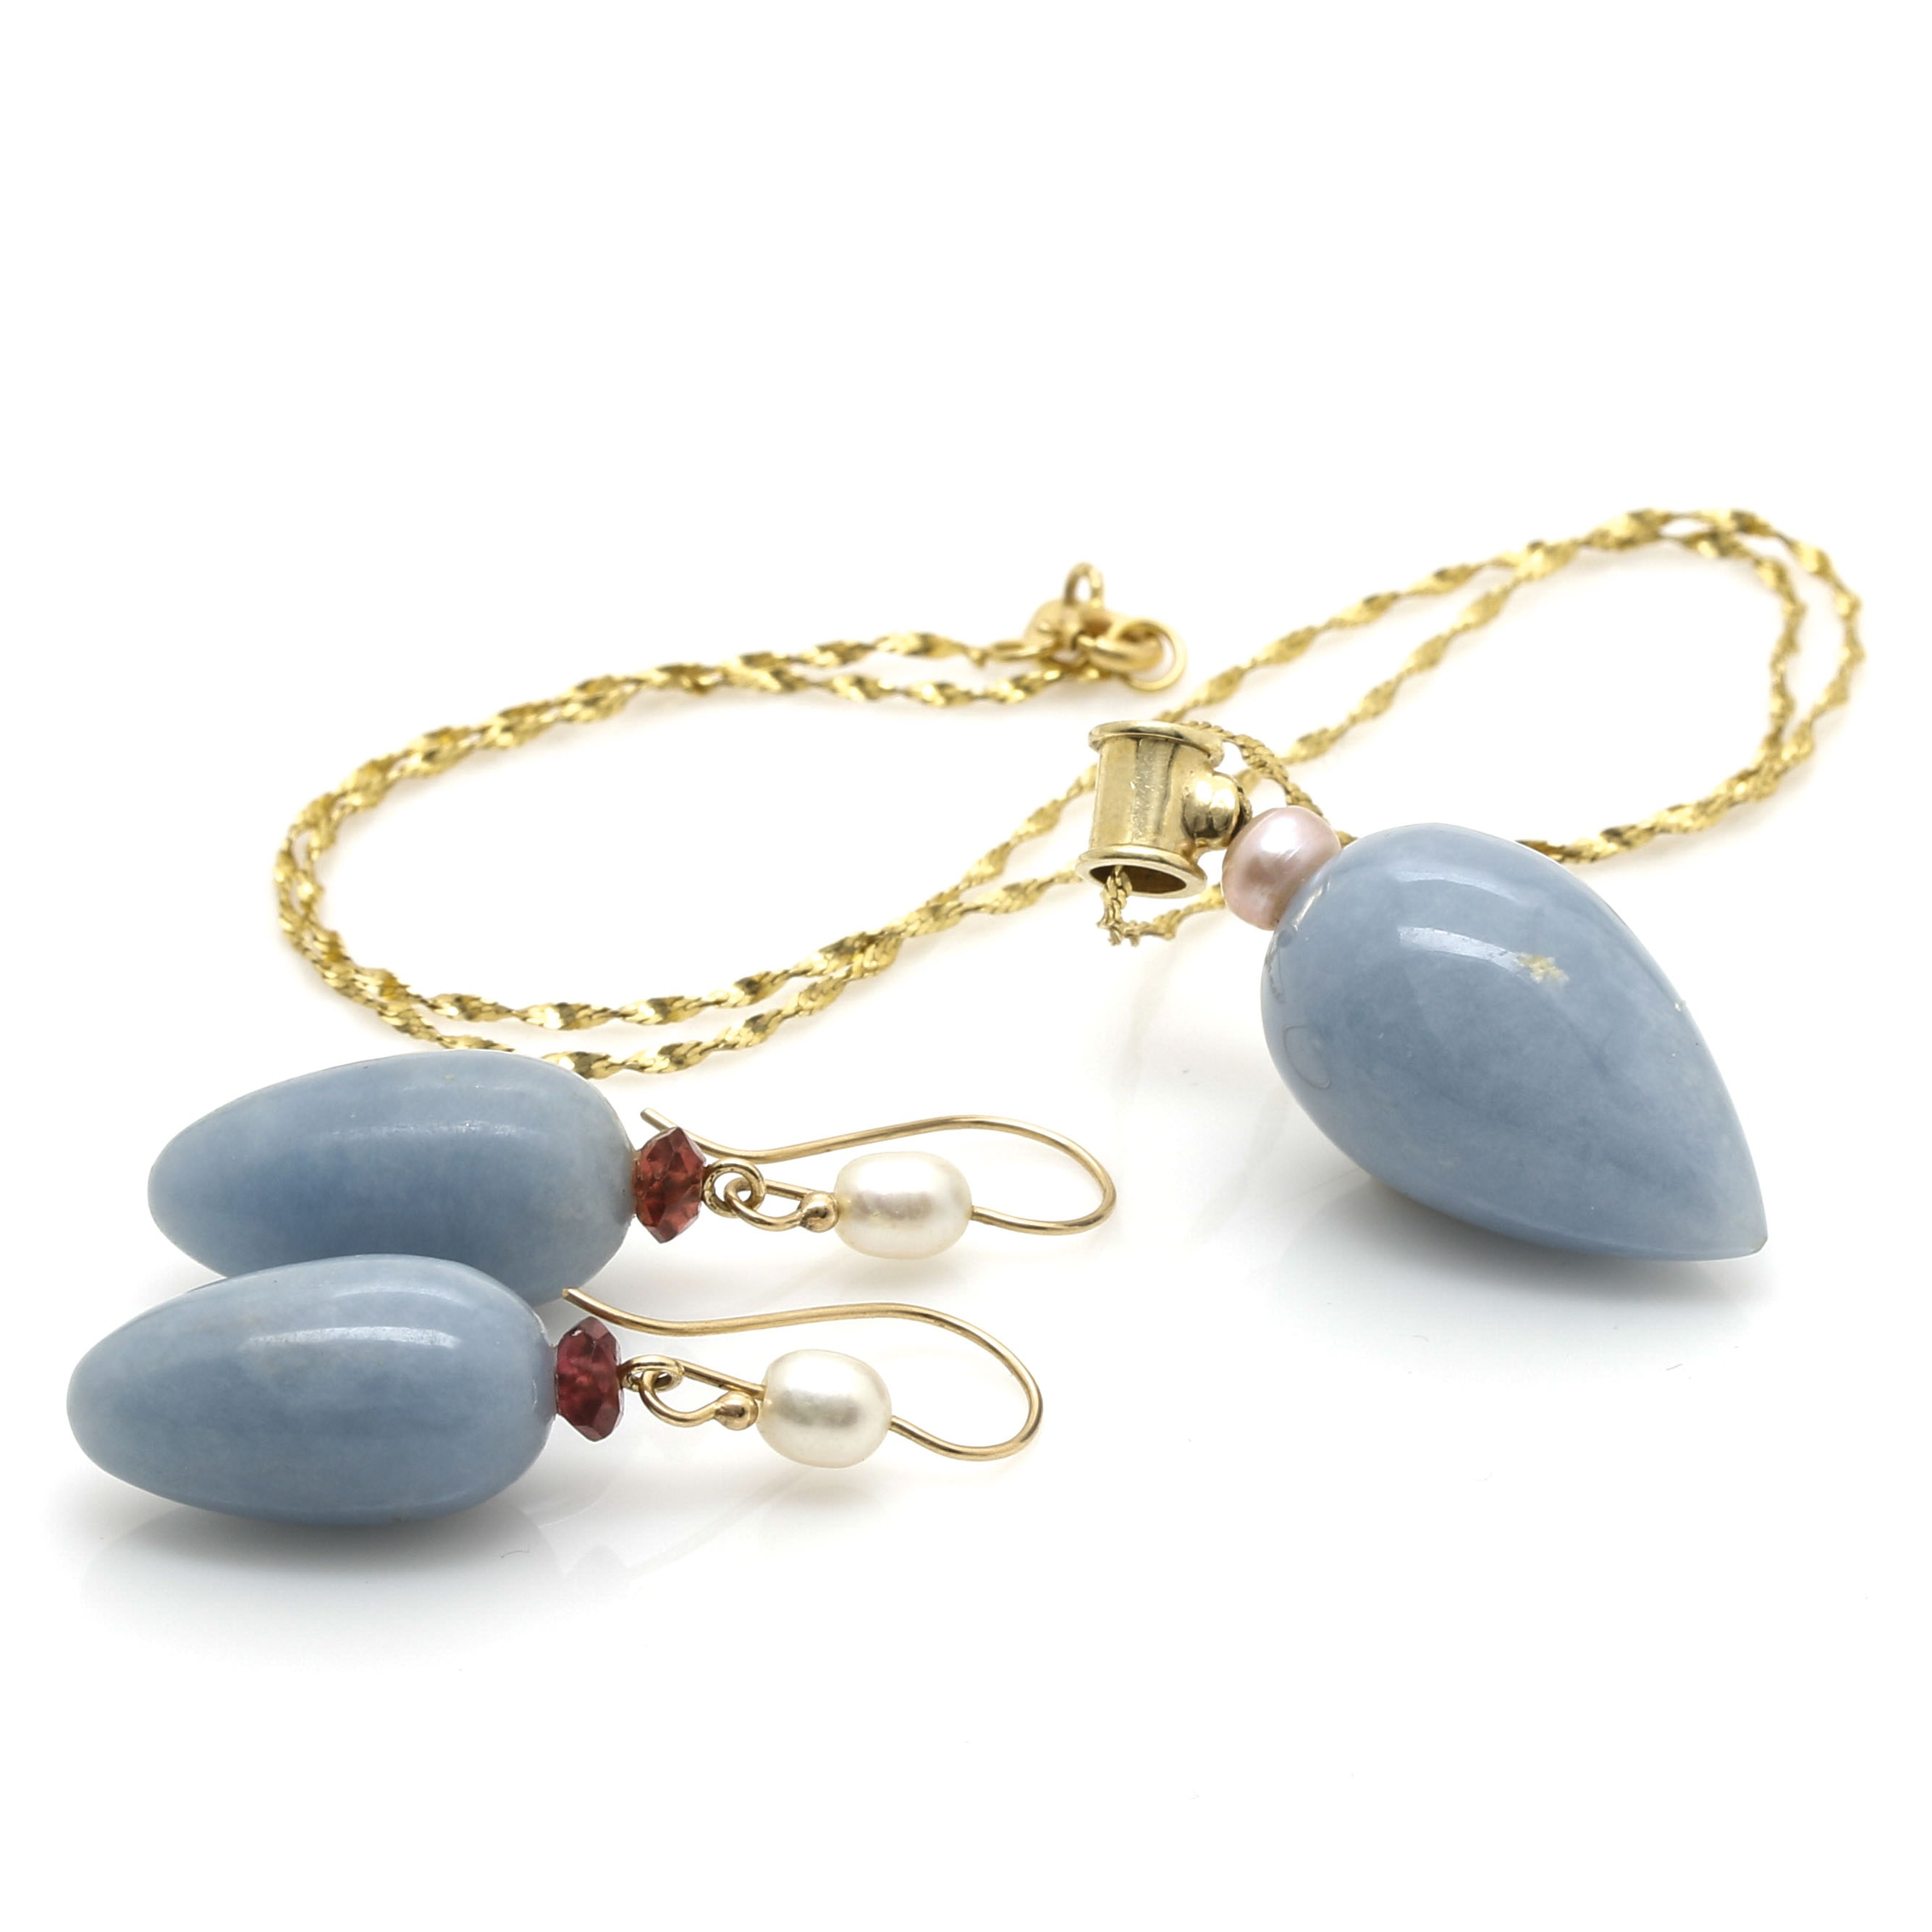 14K Yellow Gold Calcite Necklace and Earrings